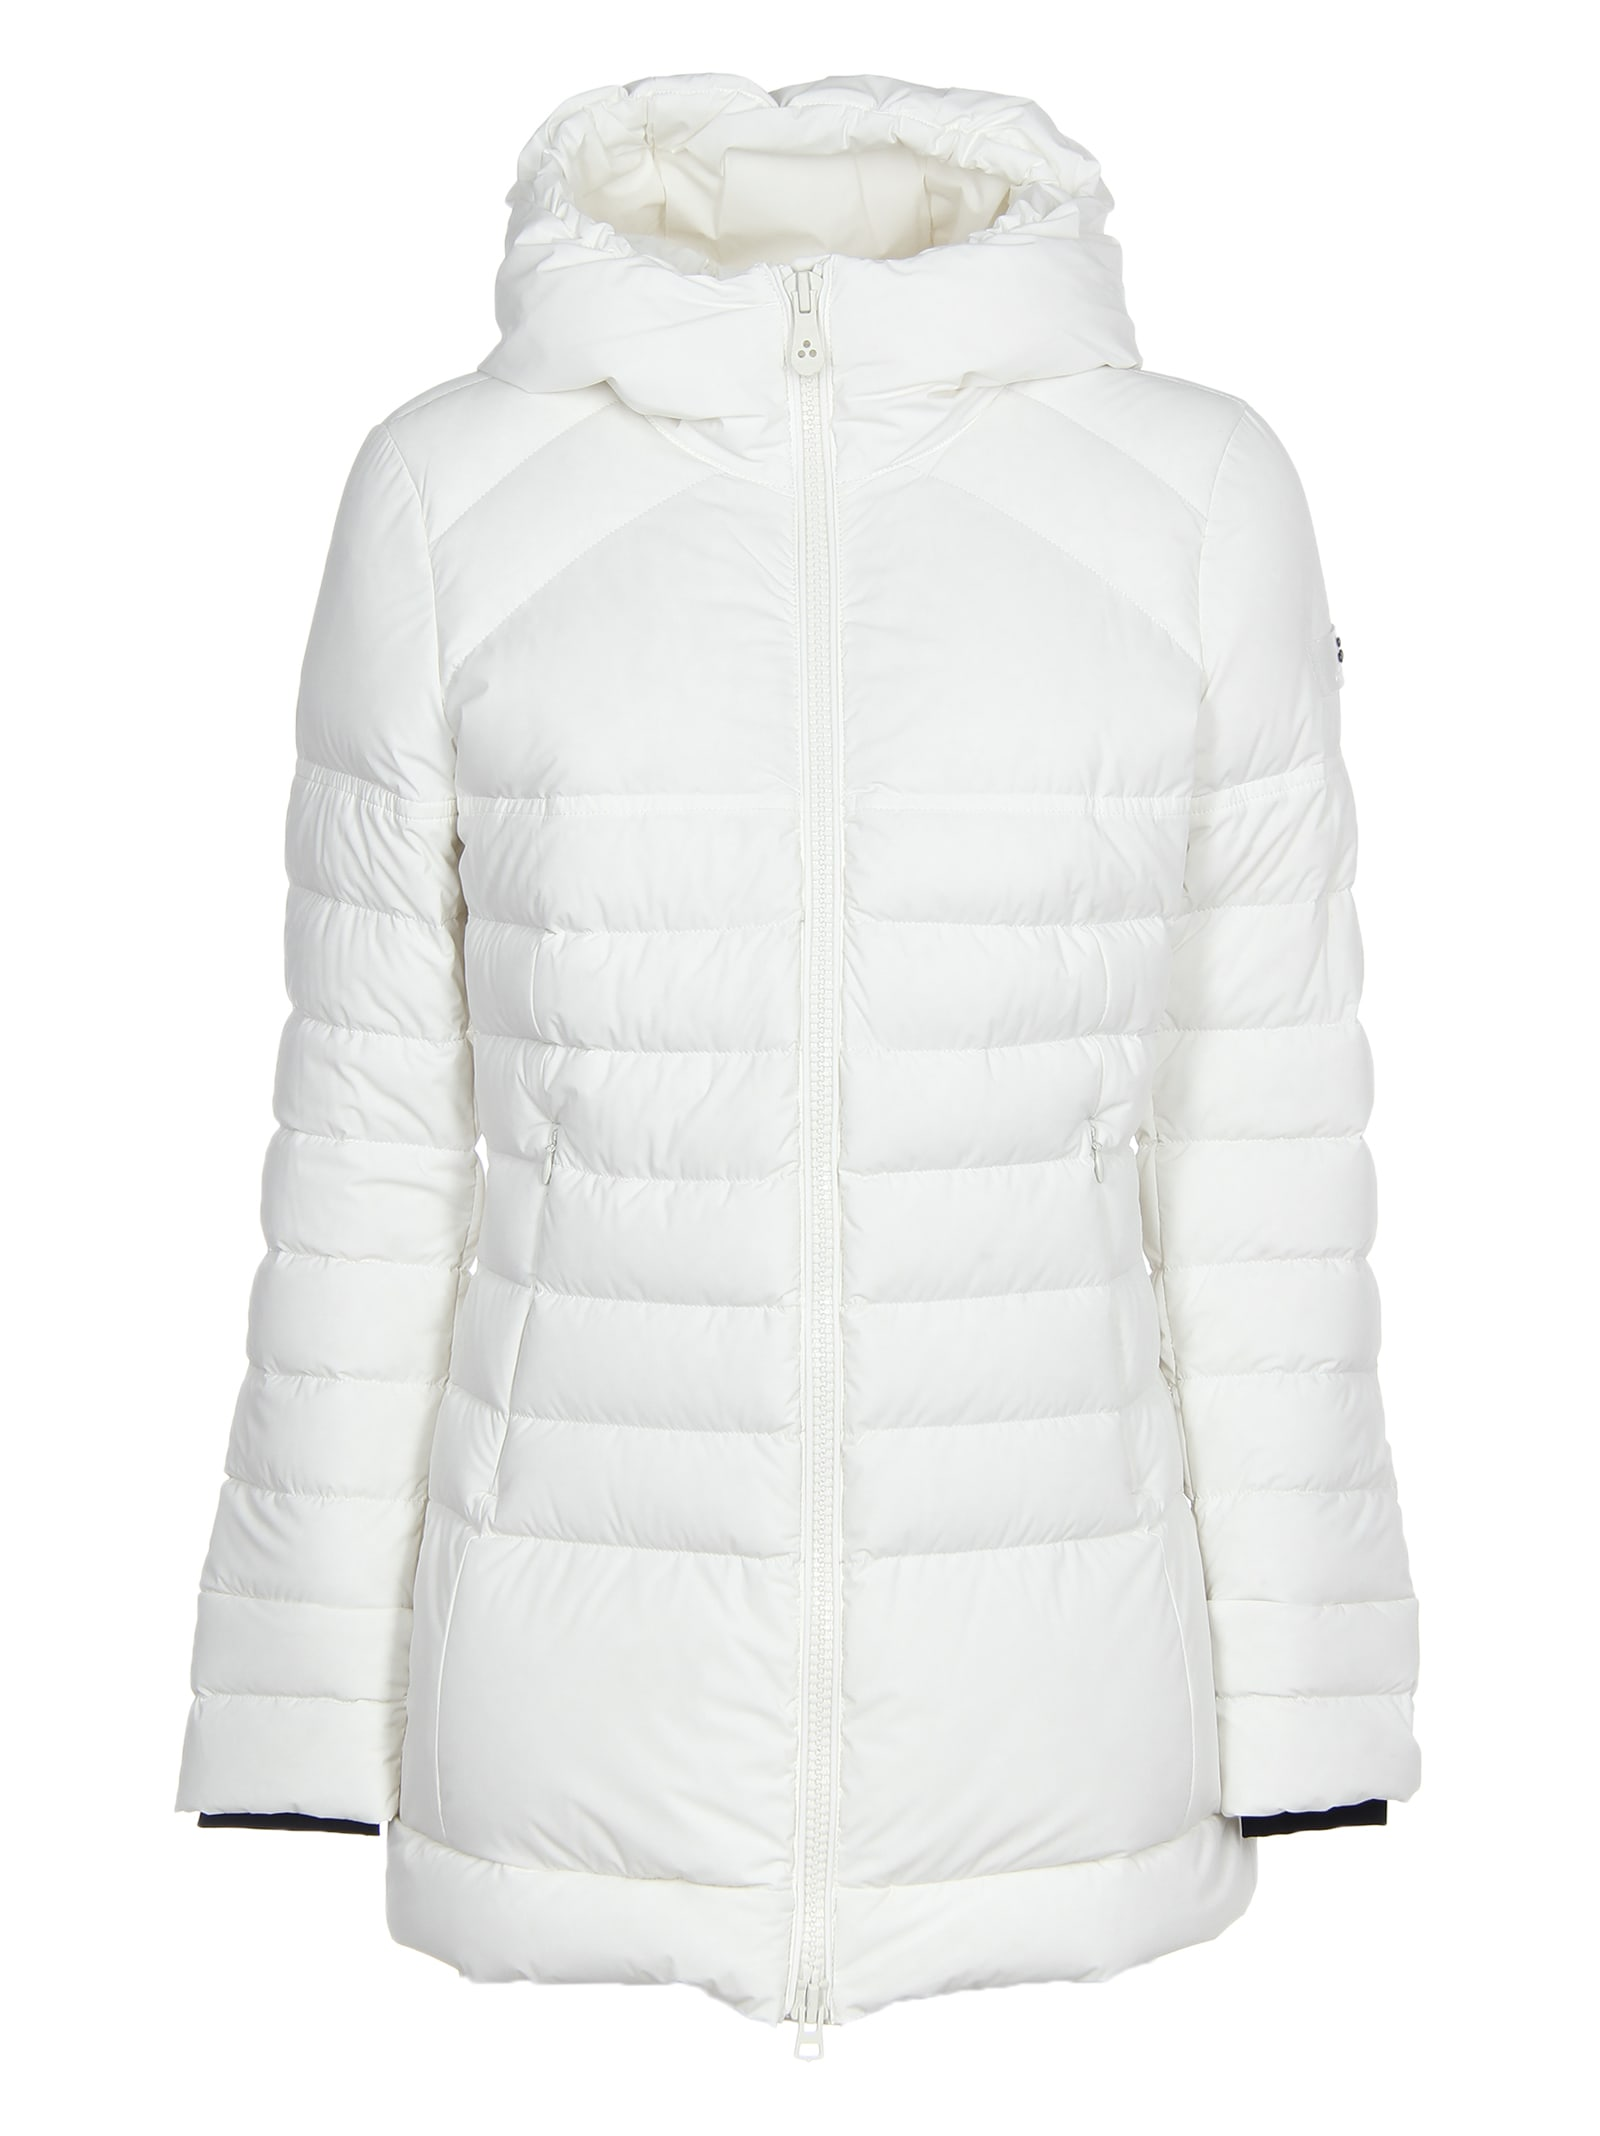 Peuterey Long White Down Jacket